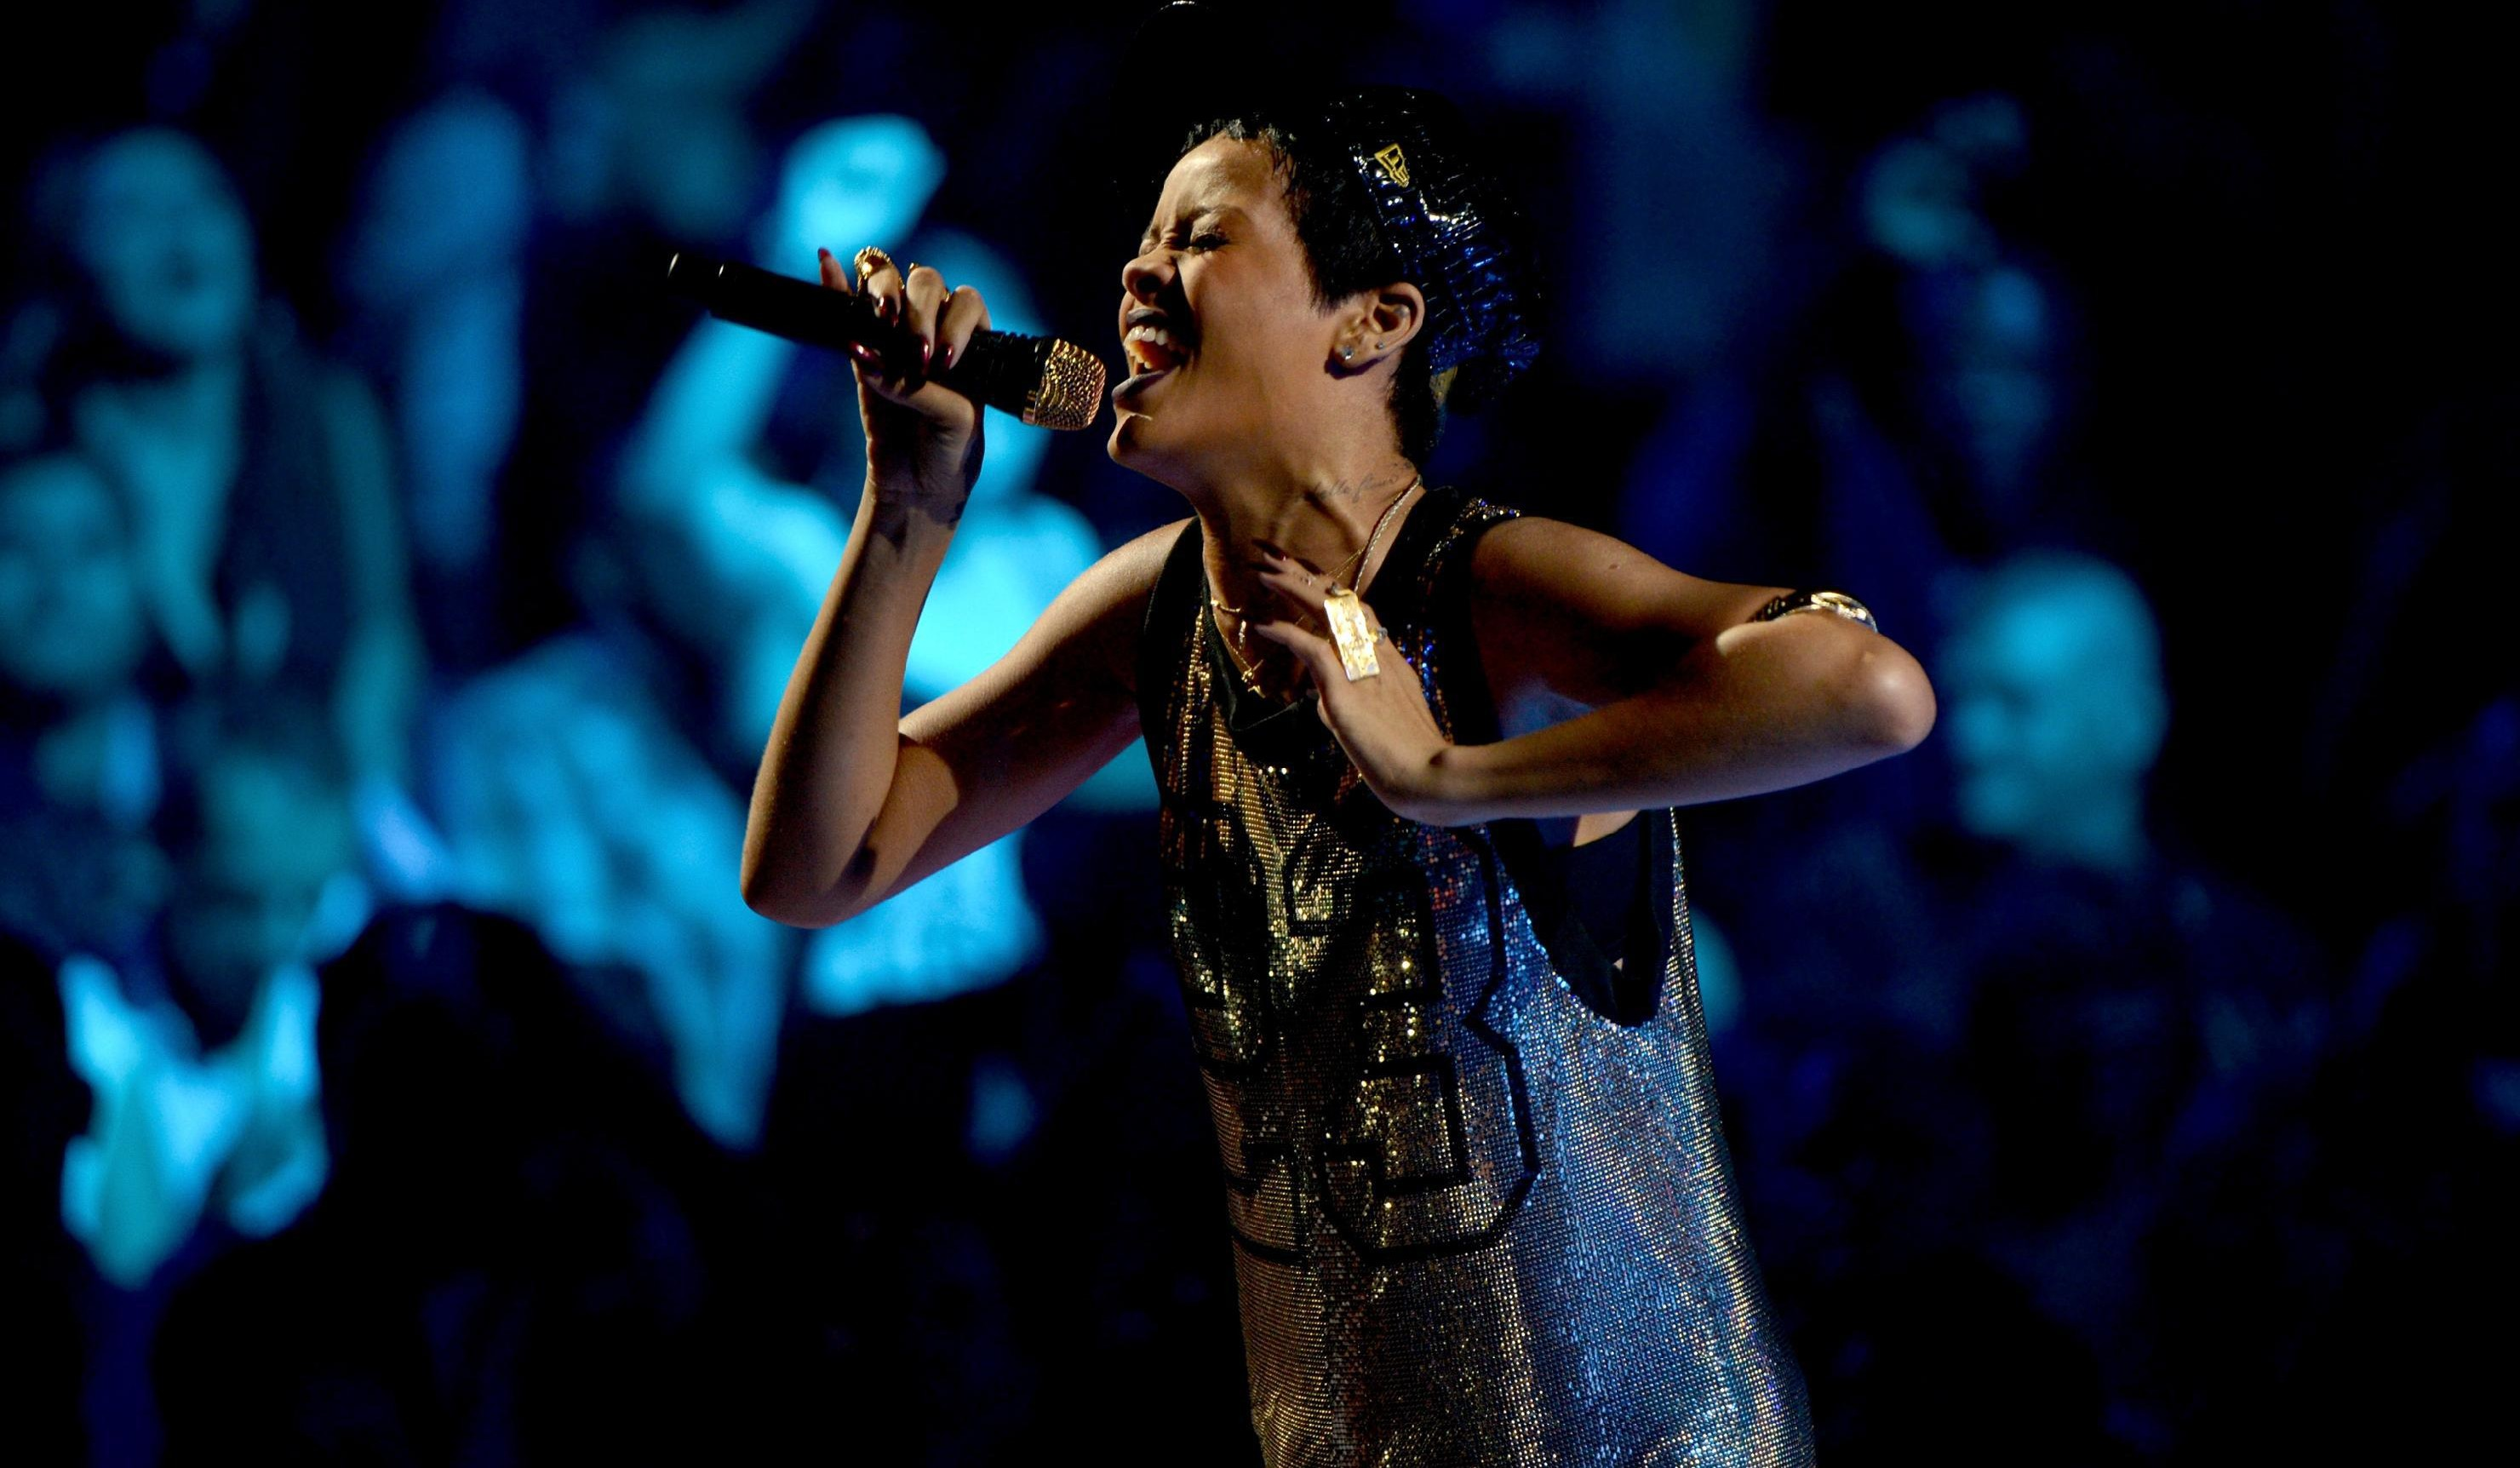 Rihanna is coming to town. (Getty Images)